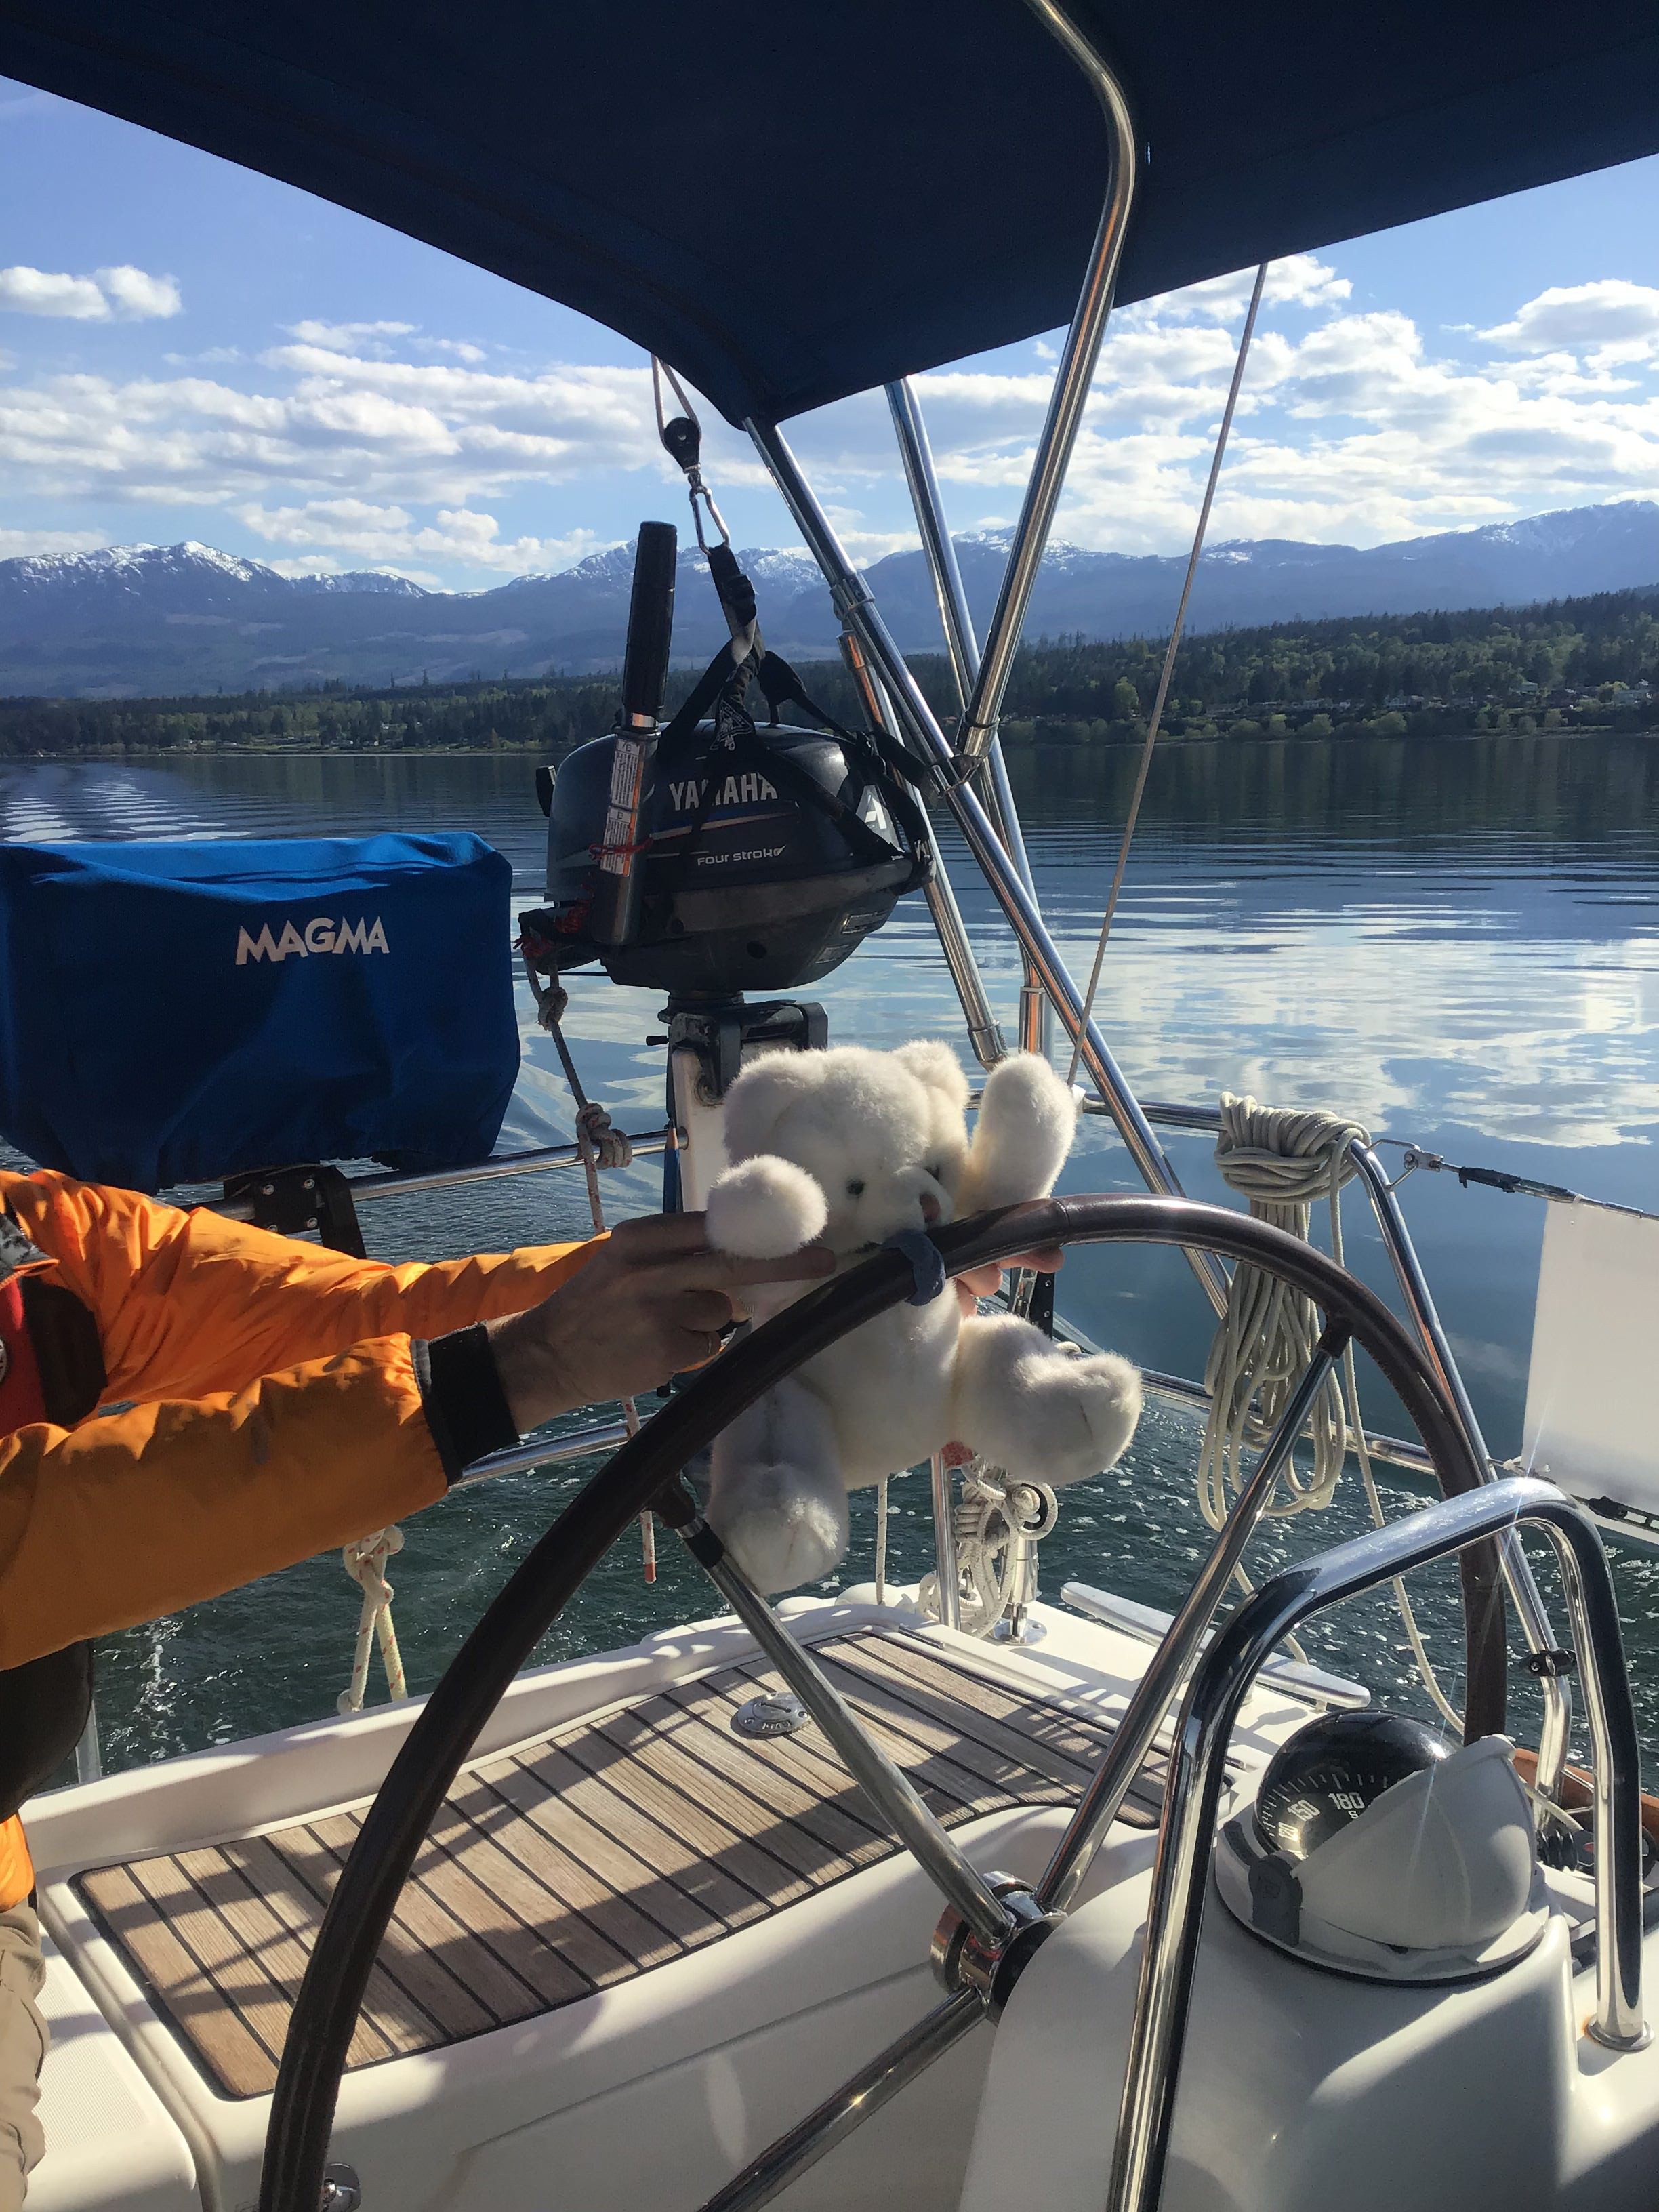 Teddy bear being aided in steering the boat